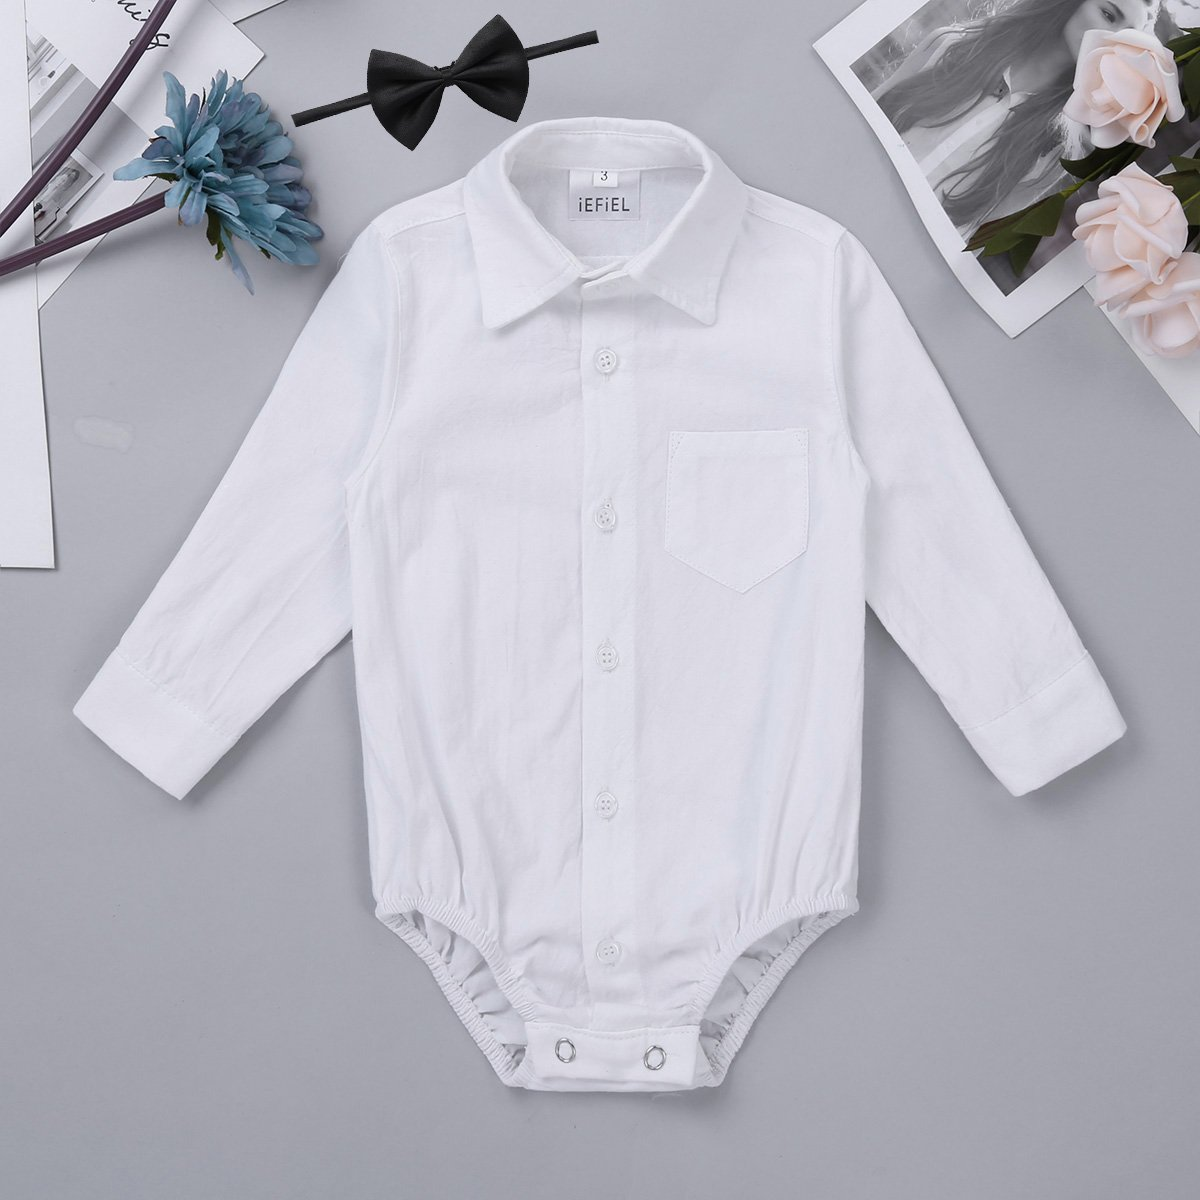 iEFiEL Infant Baby Boys Long//Short Sleeves Gentleman Romper Jumpsuit Formal Dress Shirt Bodysuit